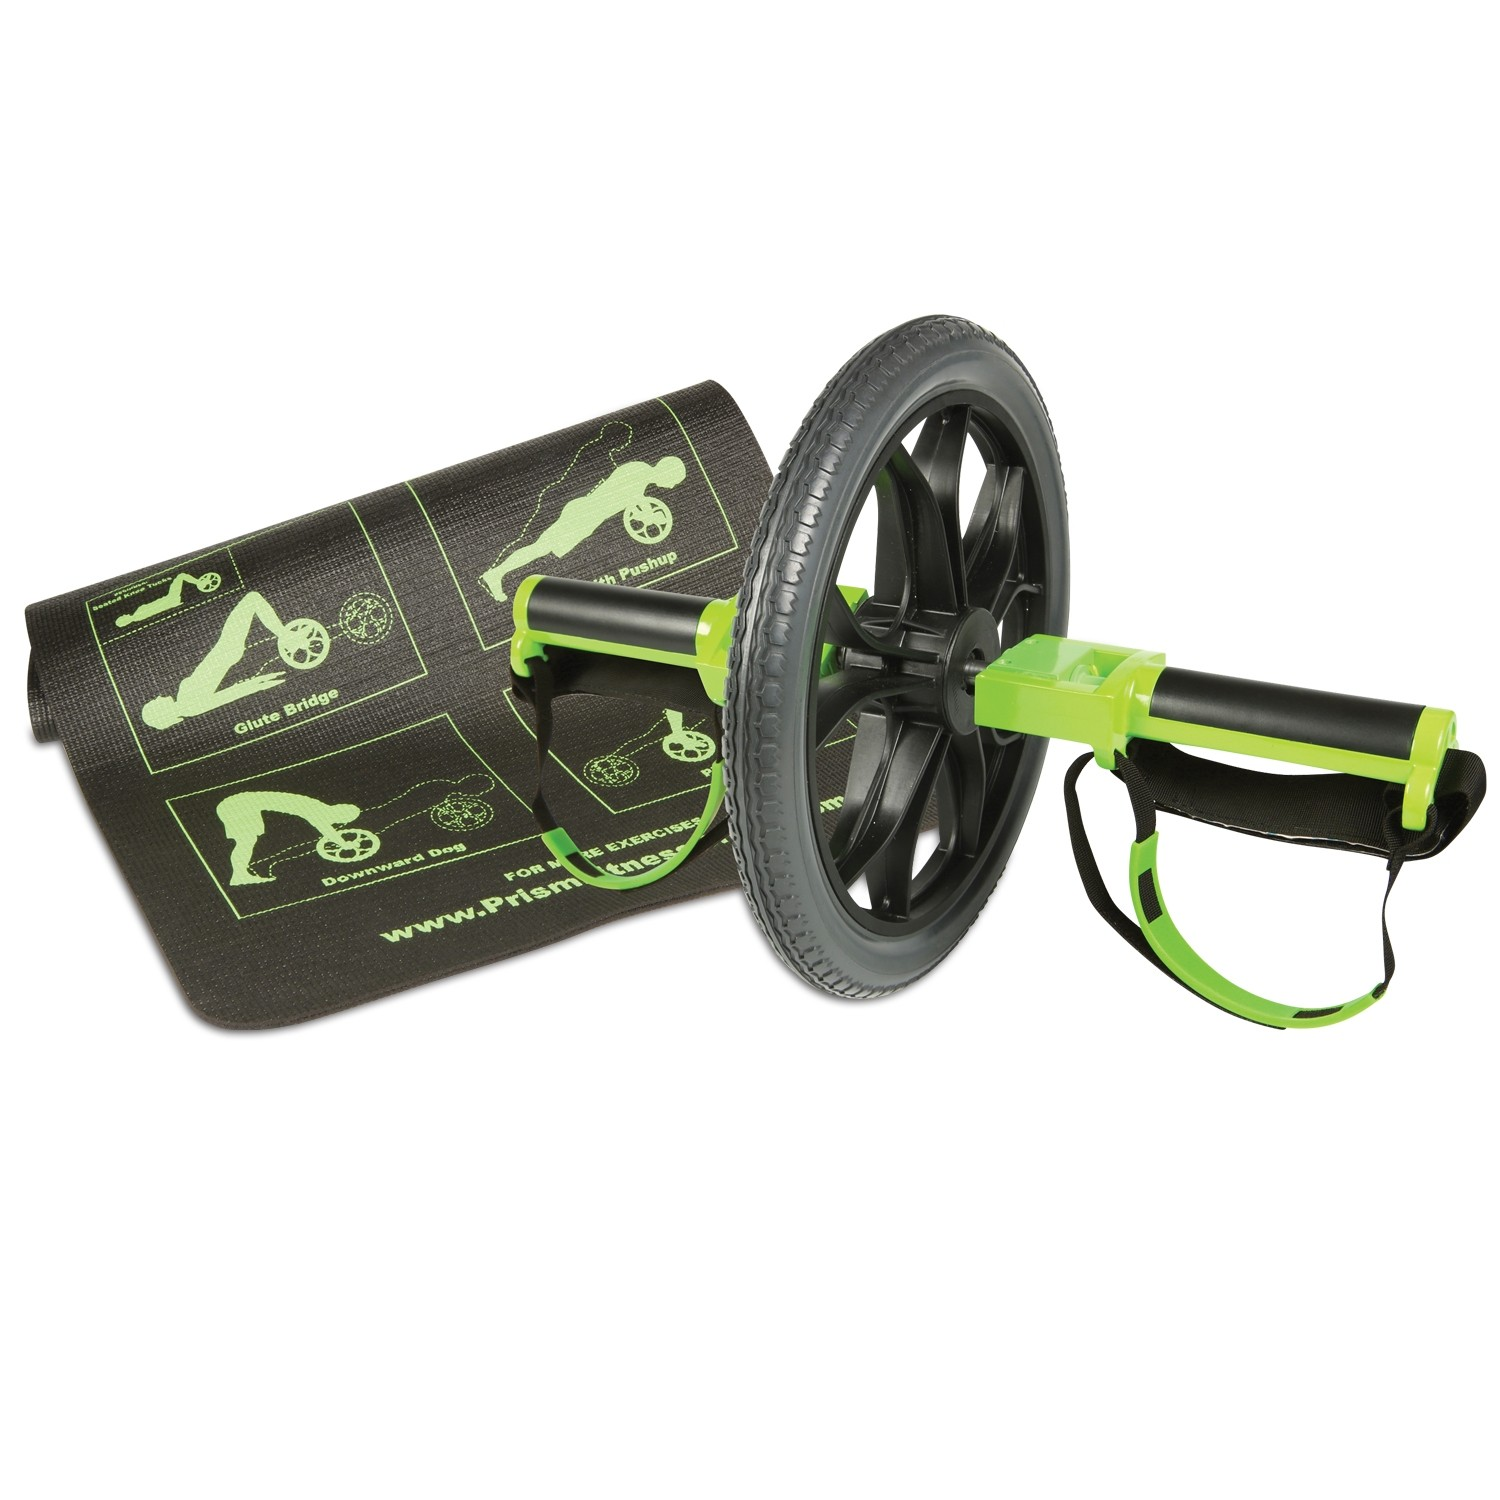 Prism Smart Self-Guided Smart Core Ab Wheel with Mat